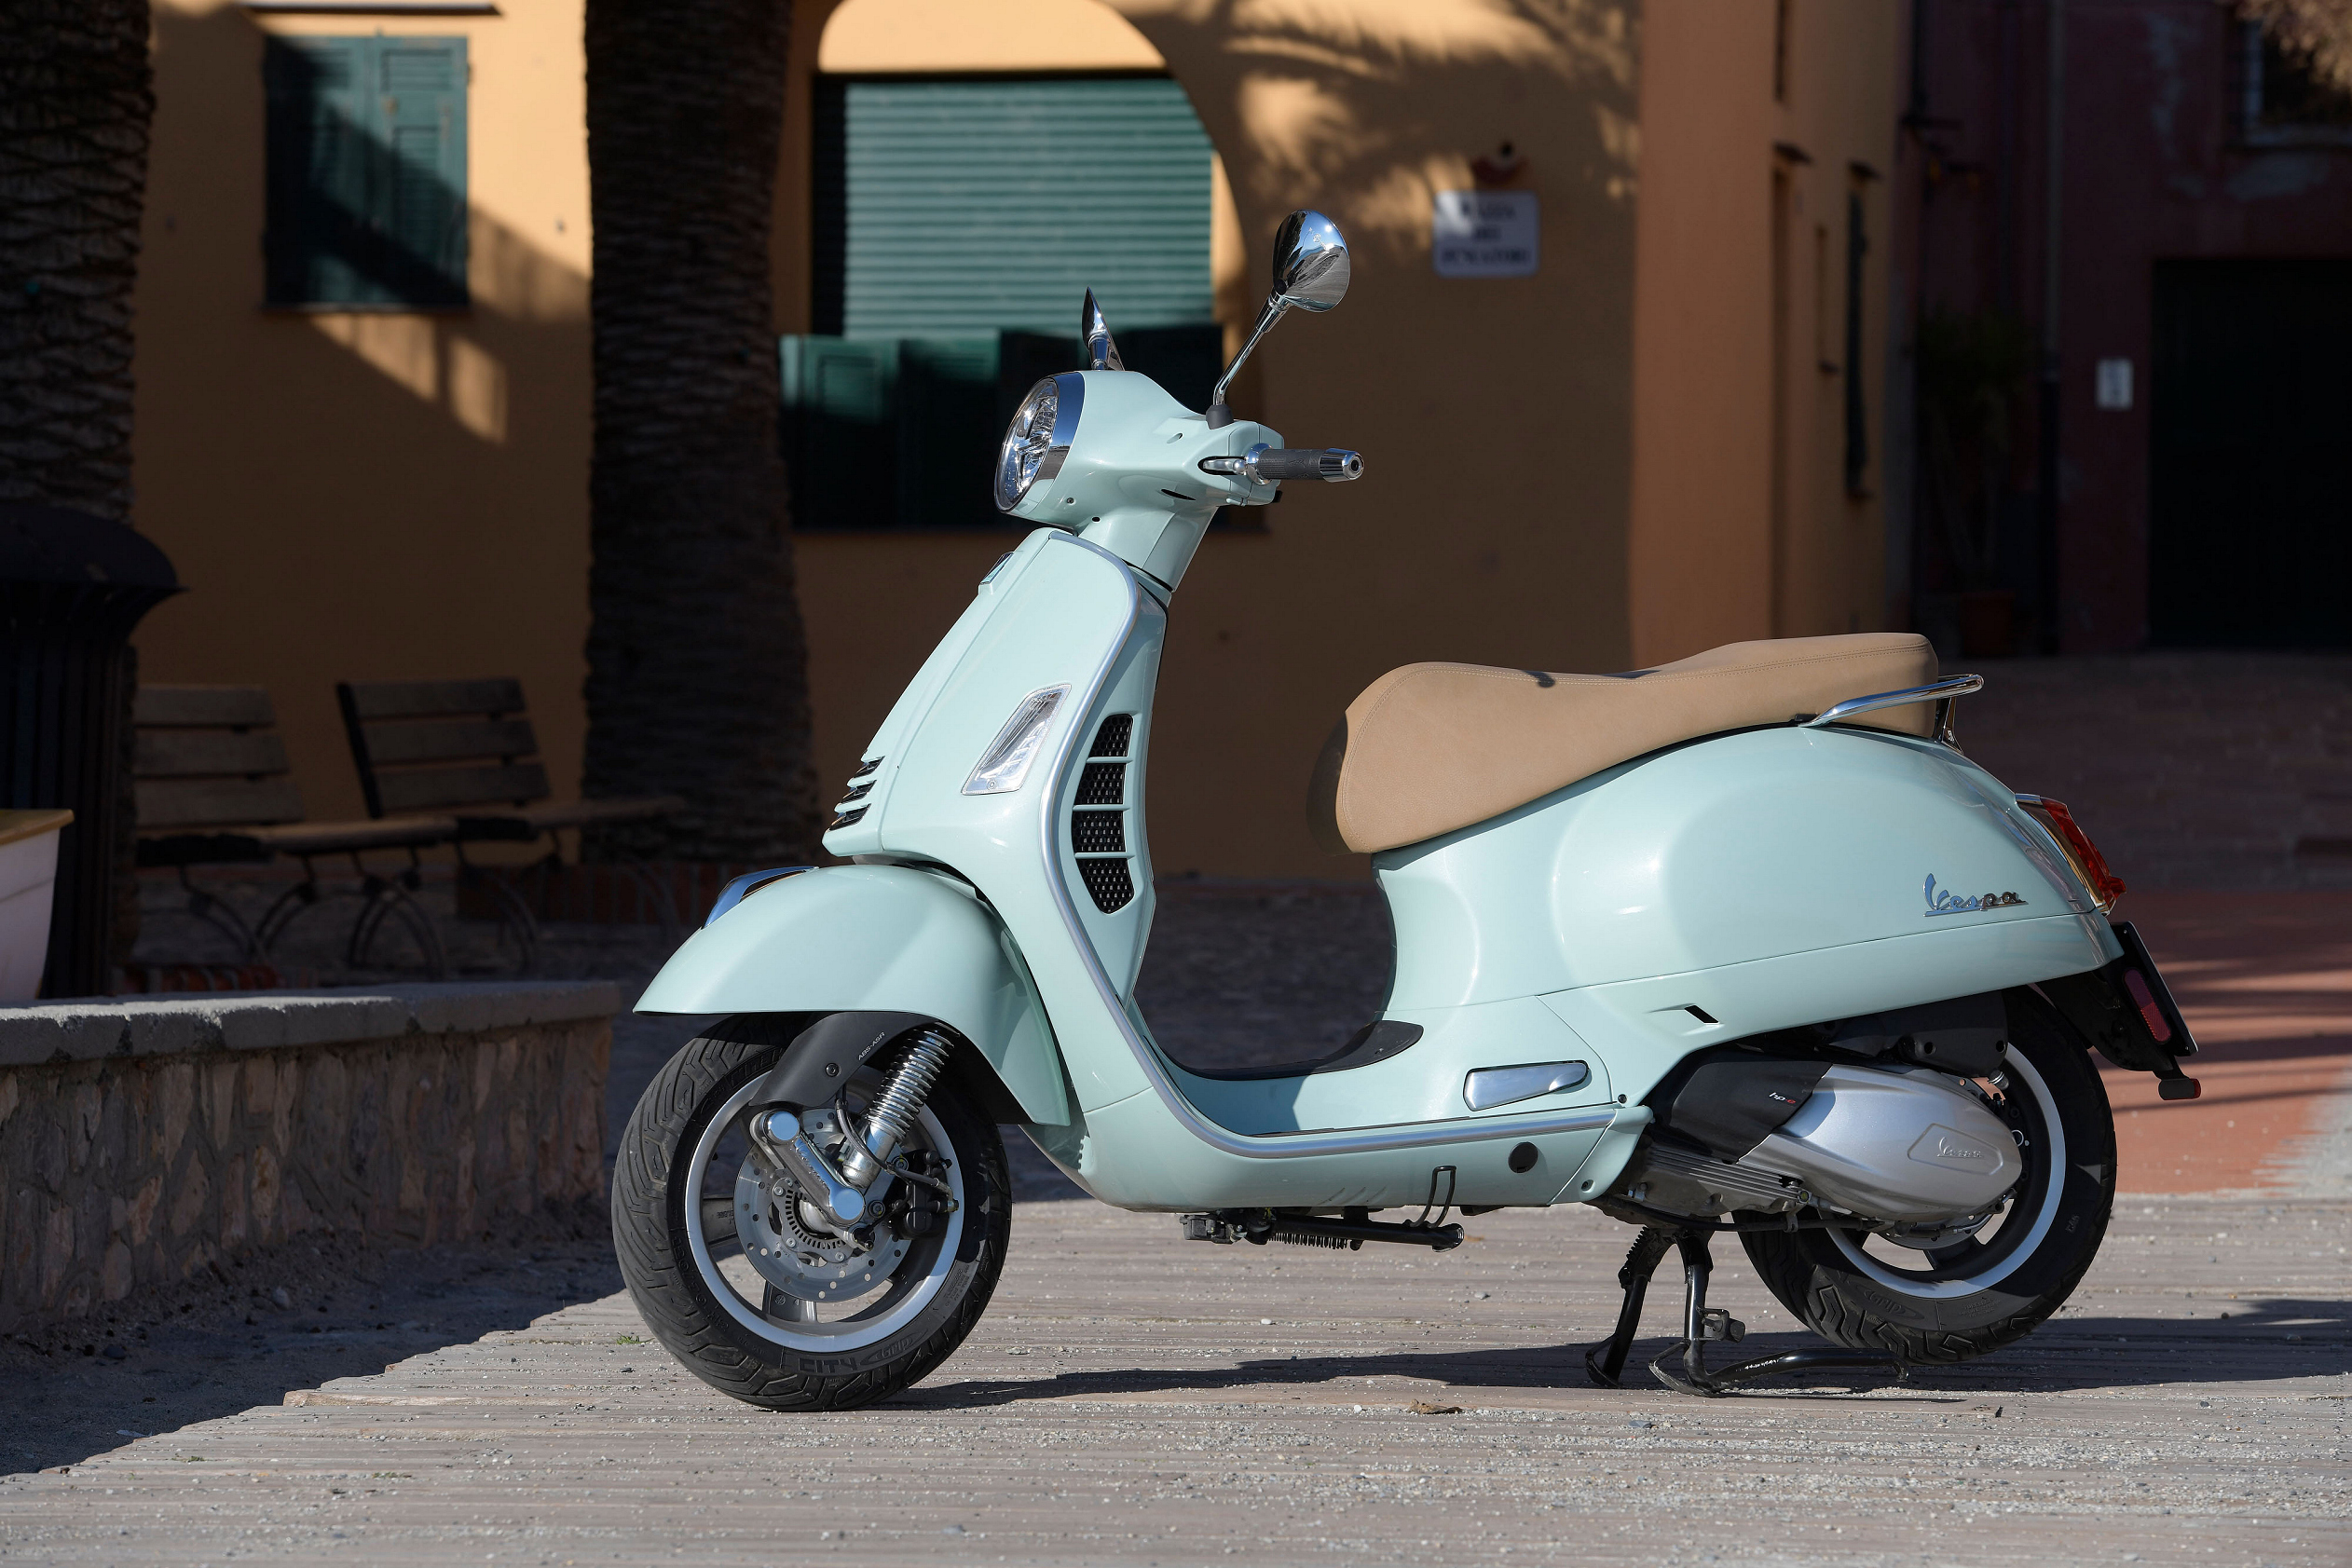 Vespa Gts Latest News Reviews Specifications Prices Photos And Videos Top Speed